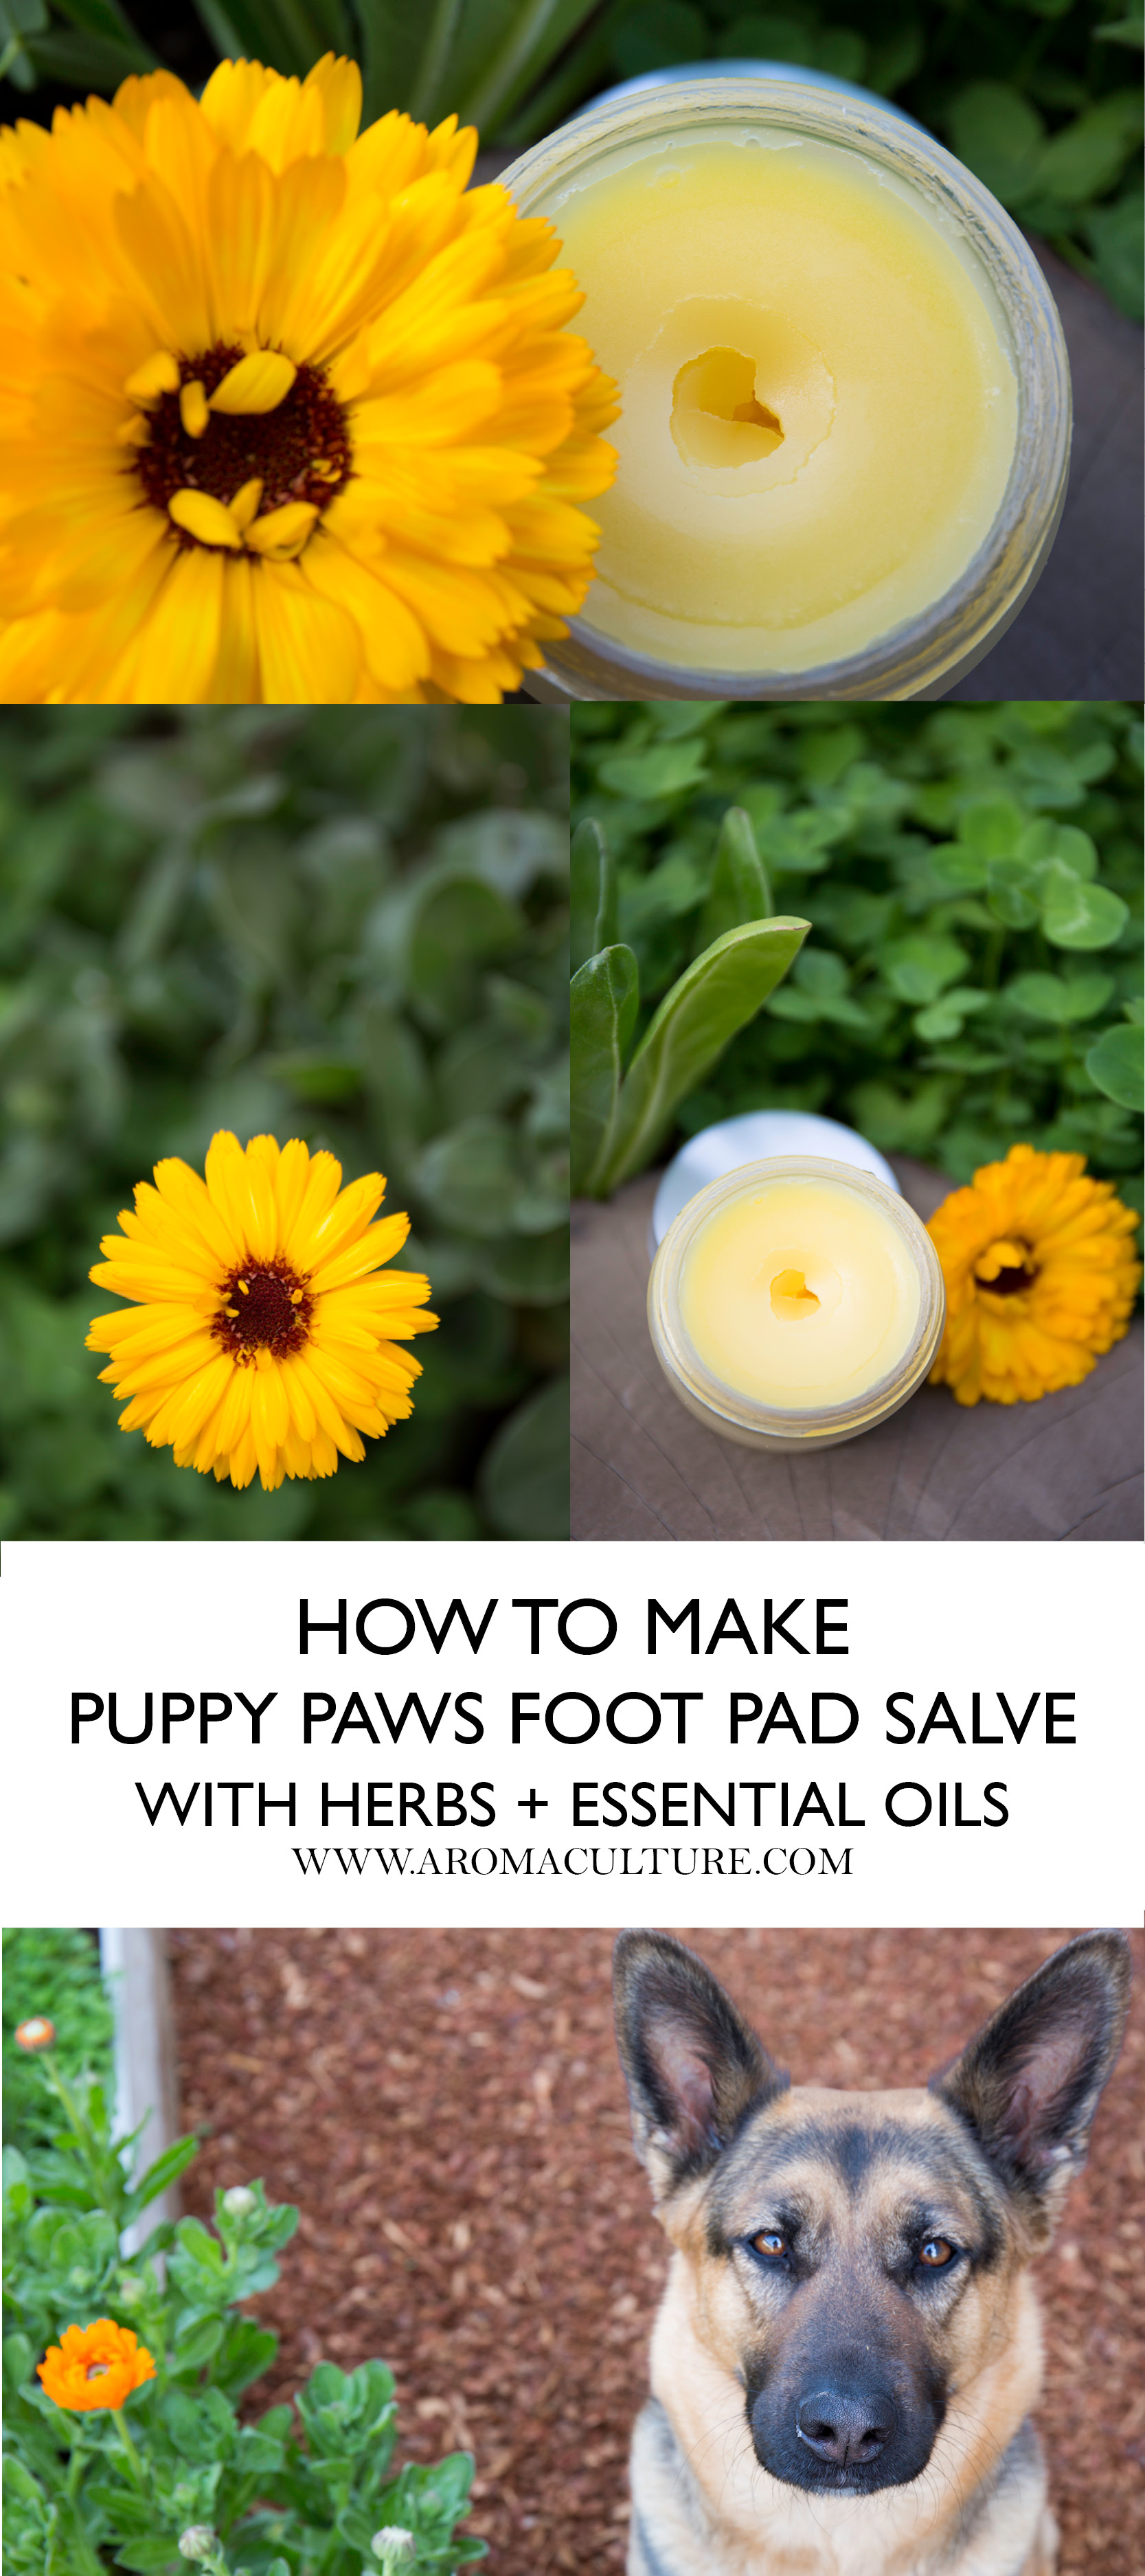 HOW TO MAKE PUPPY PAWS FOOT PAD SALVE AROMACULTURE.jpg